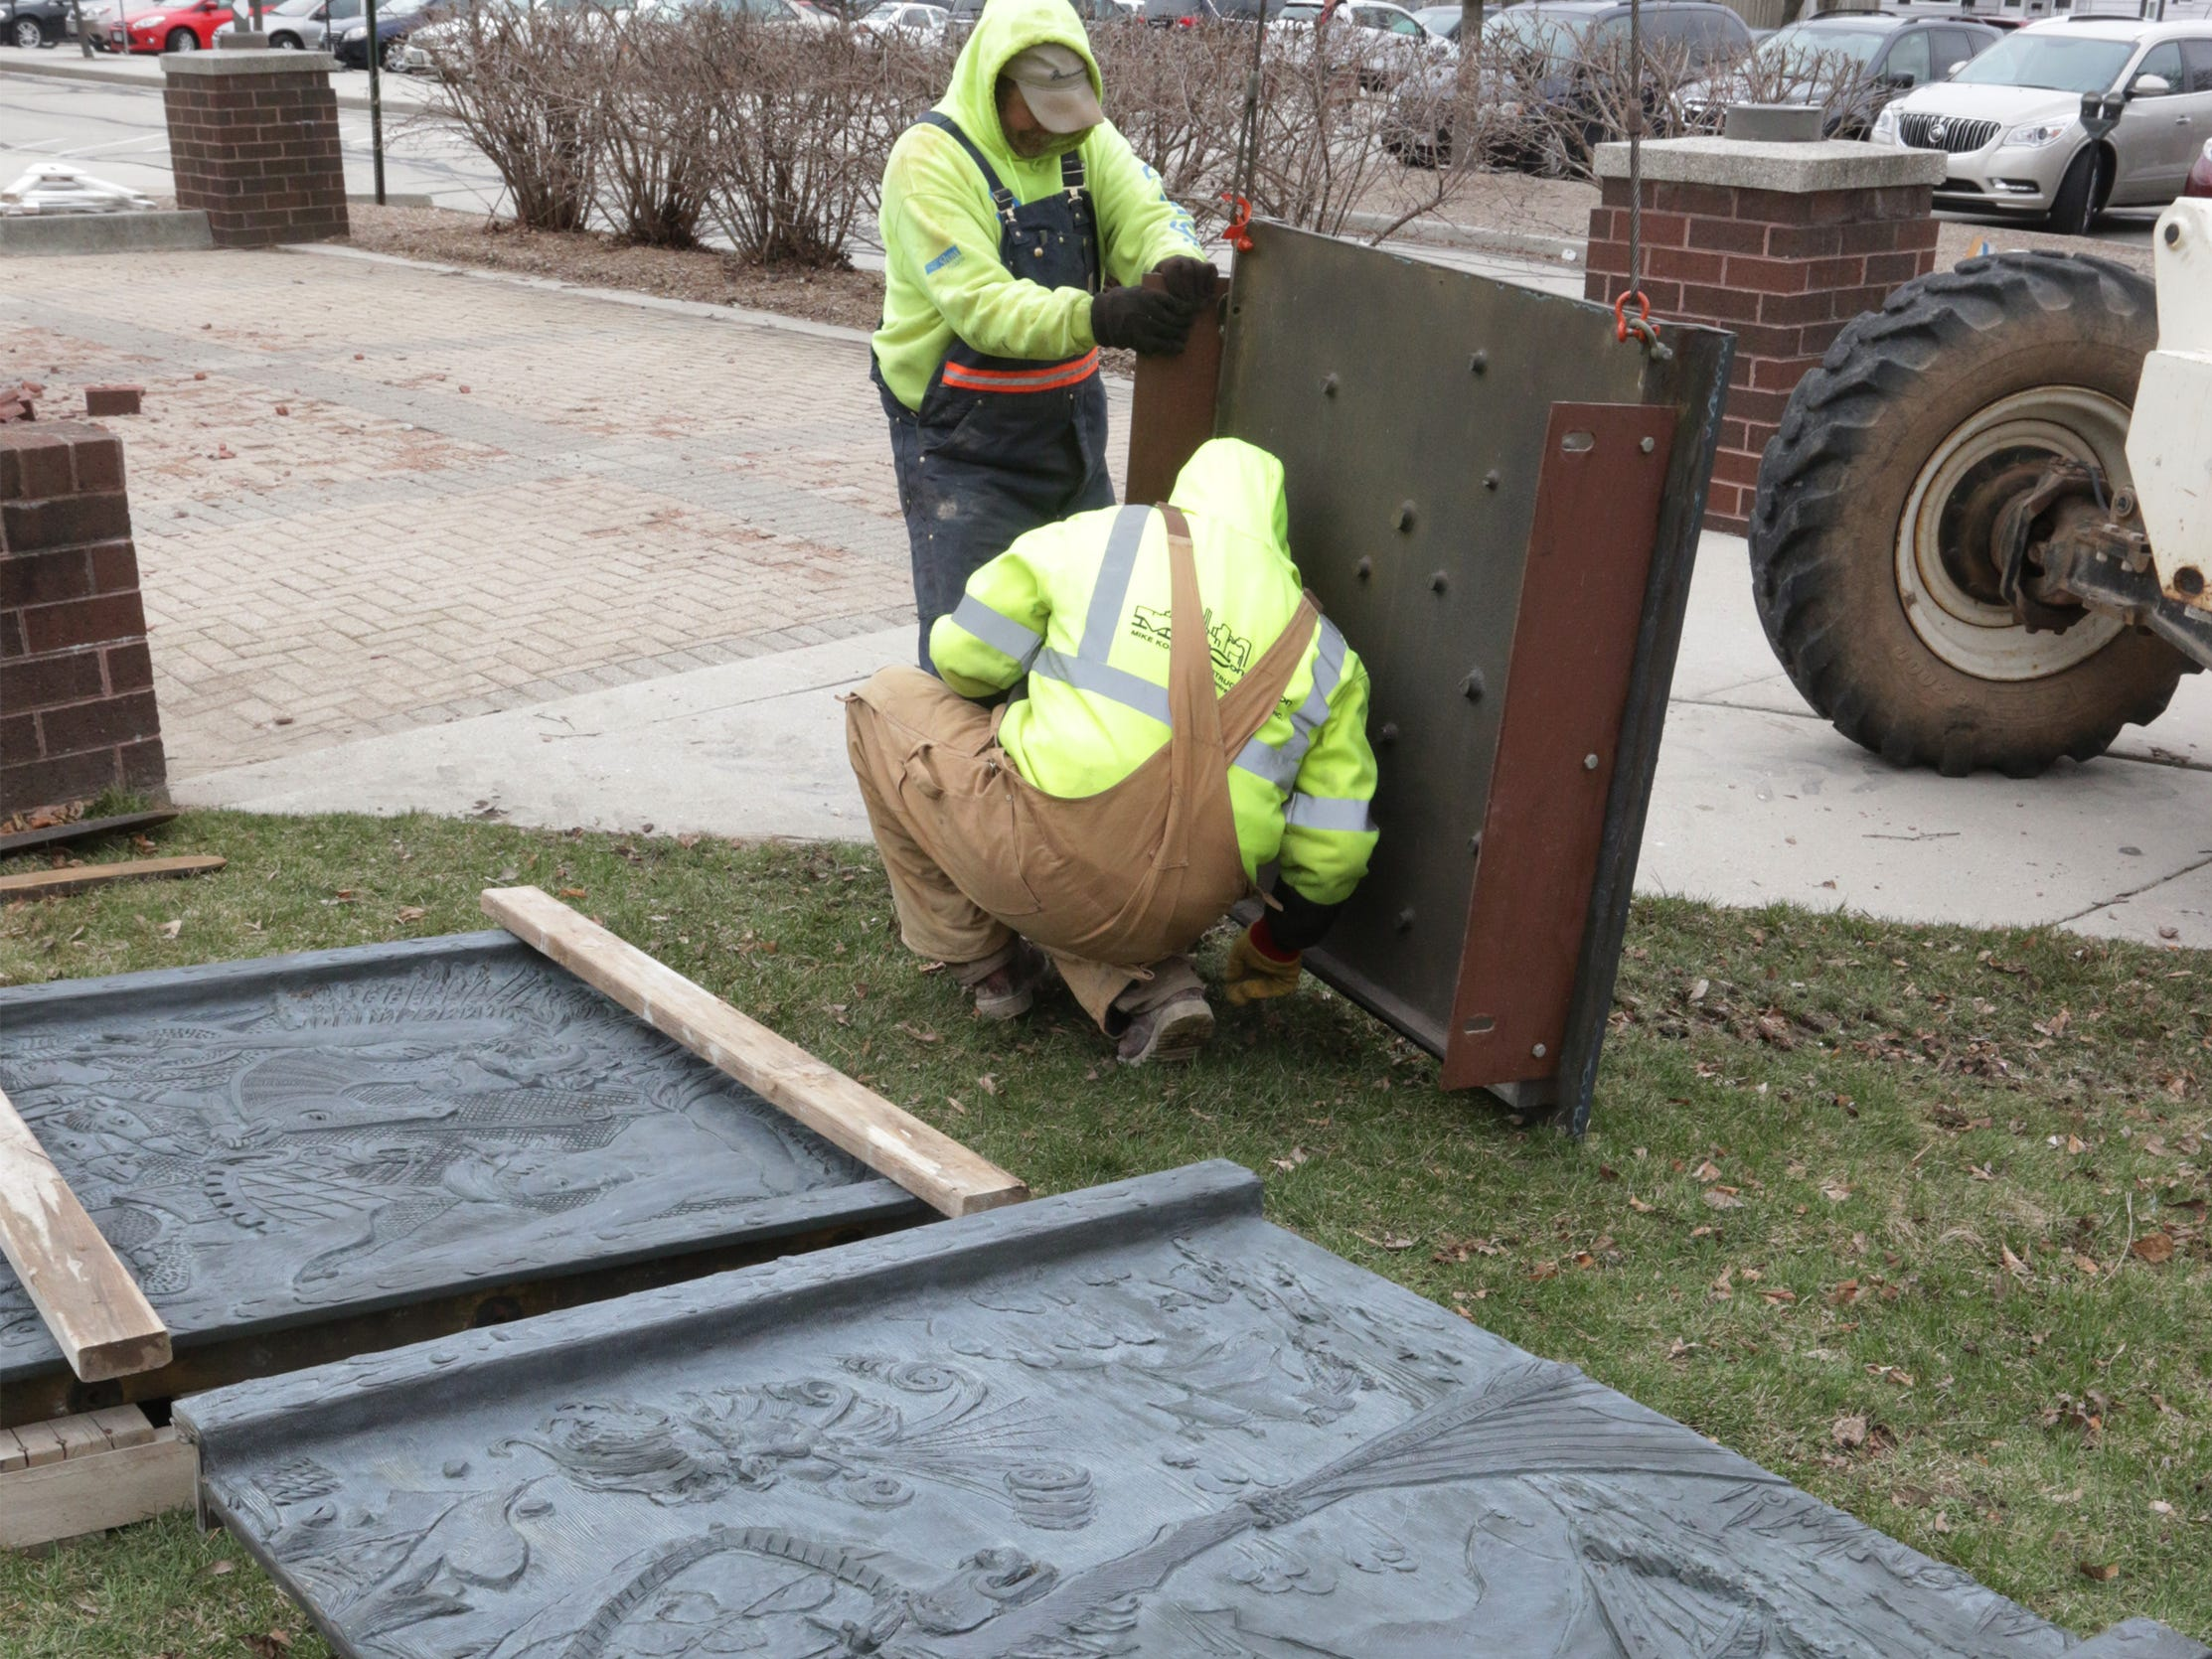 Employees from Koenig Constructions secure the 800-pound cast panels from the clock tower at Mead Public Library, Wednesday April 10, 2019, in Sheboygan, Wis. The city is repurposing the cast panels for an 8th Street display as part of a renovations project.